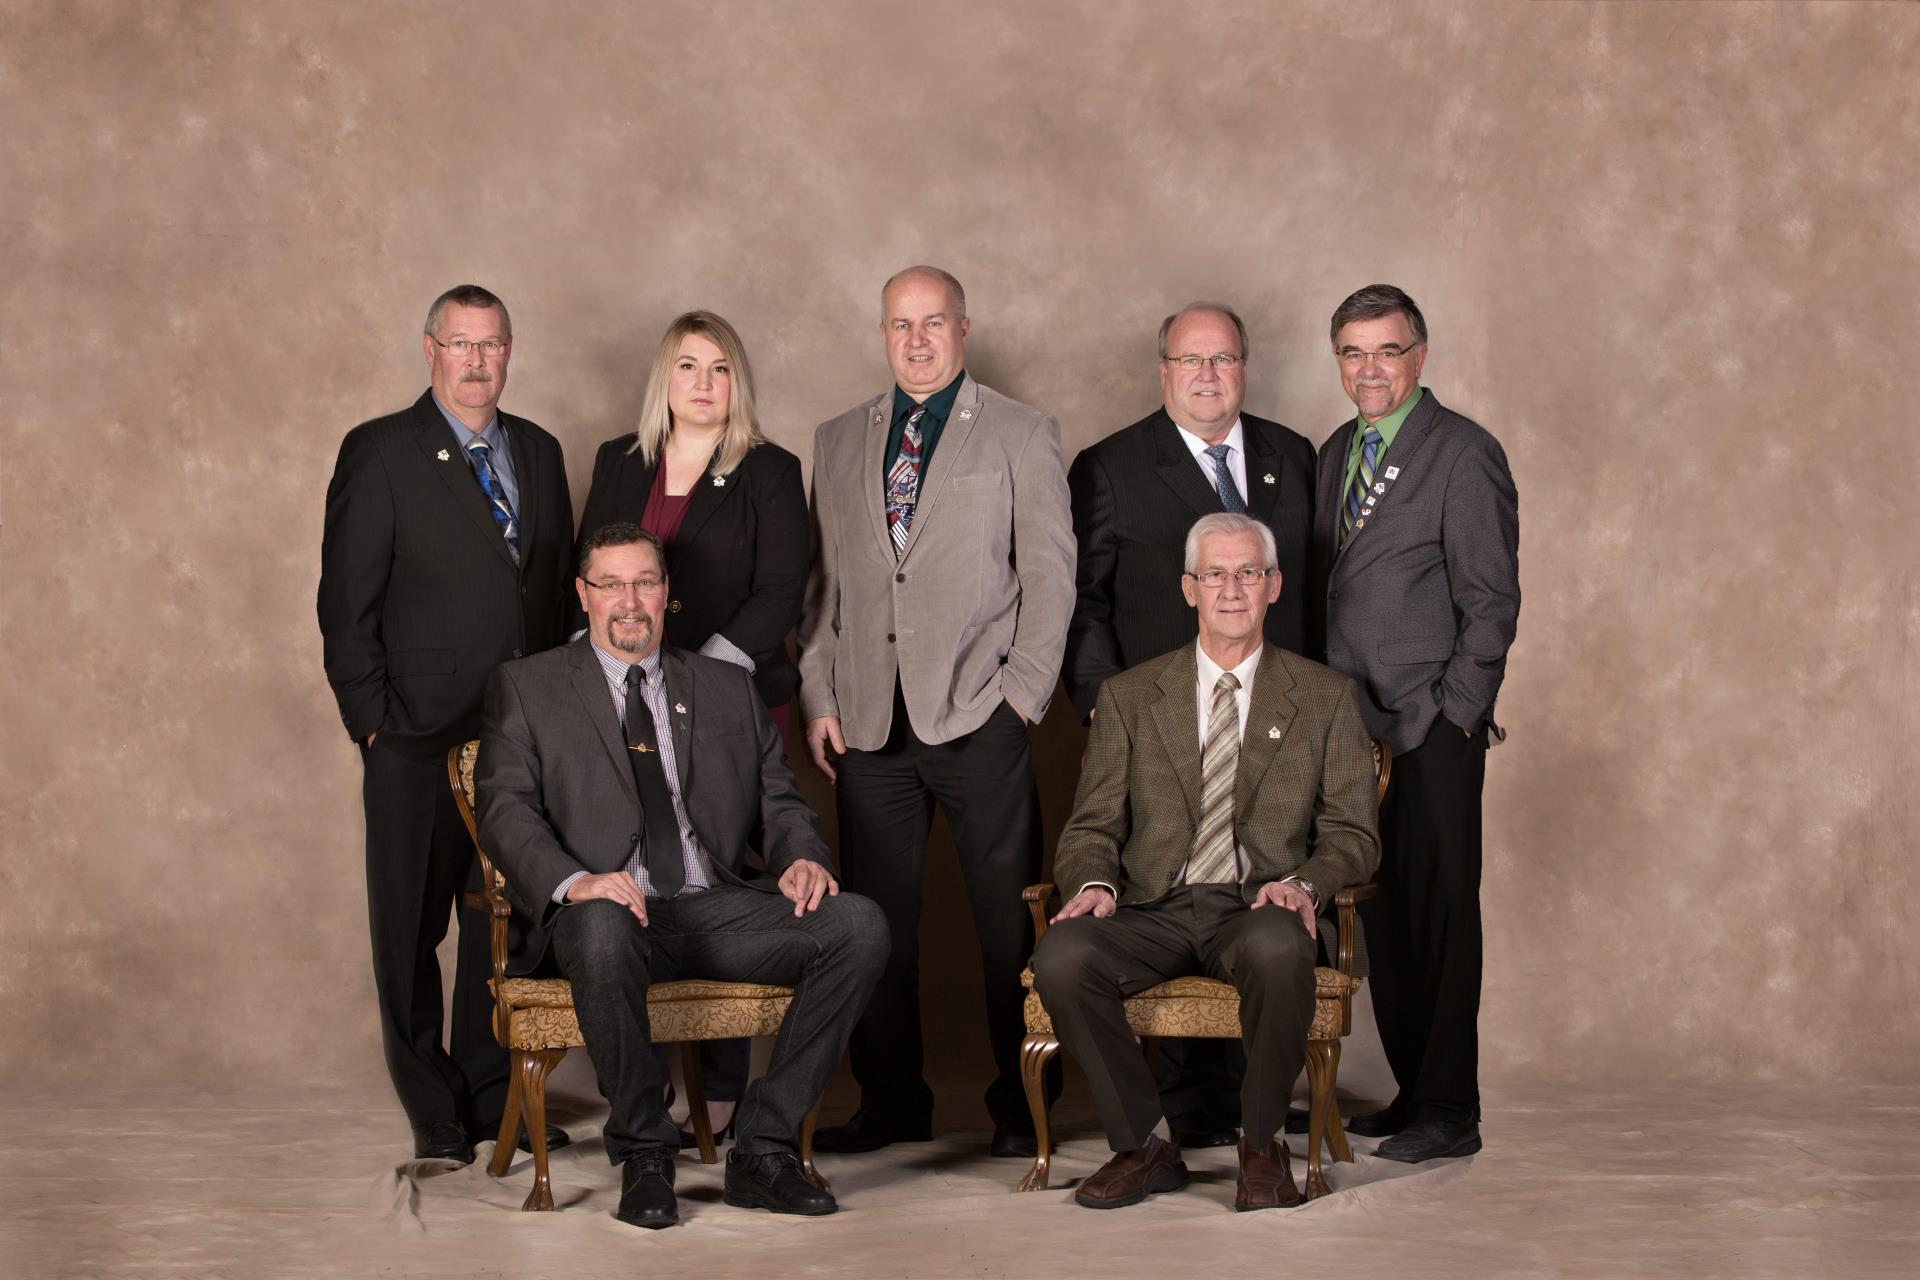 Mayor and Councillors of the Town of Taber 2018